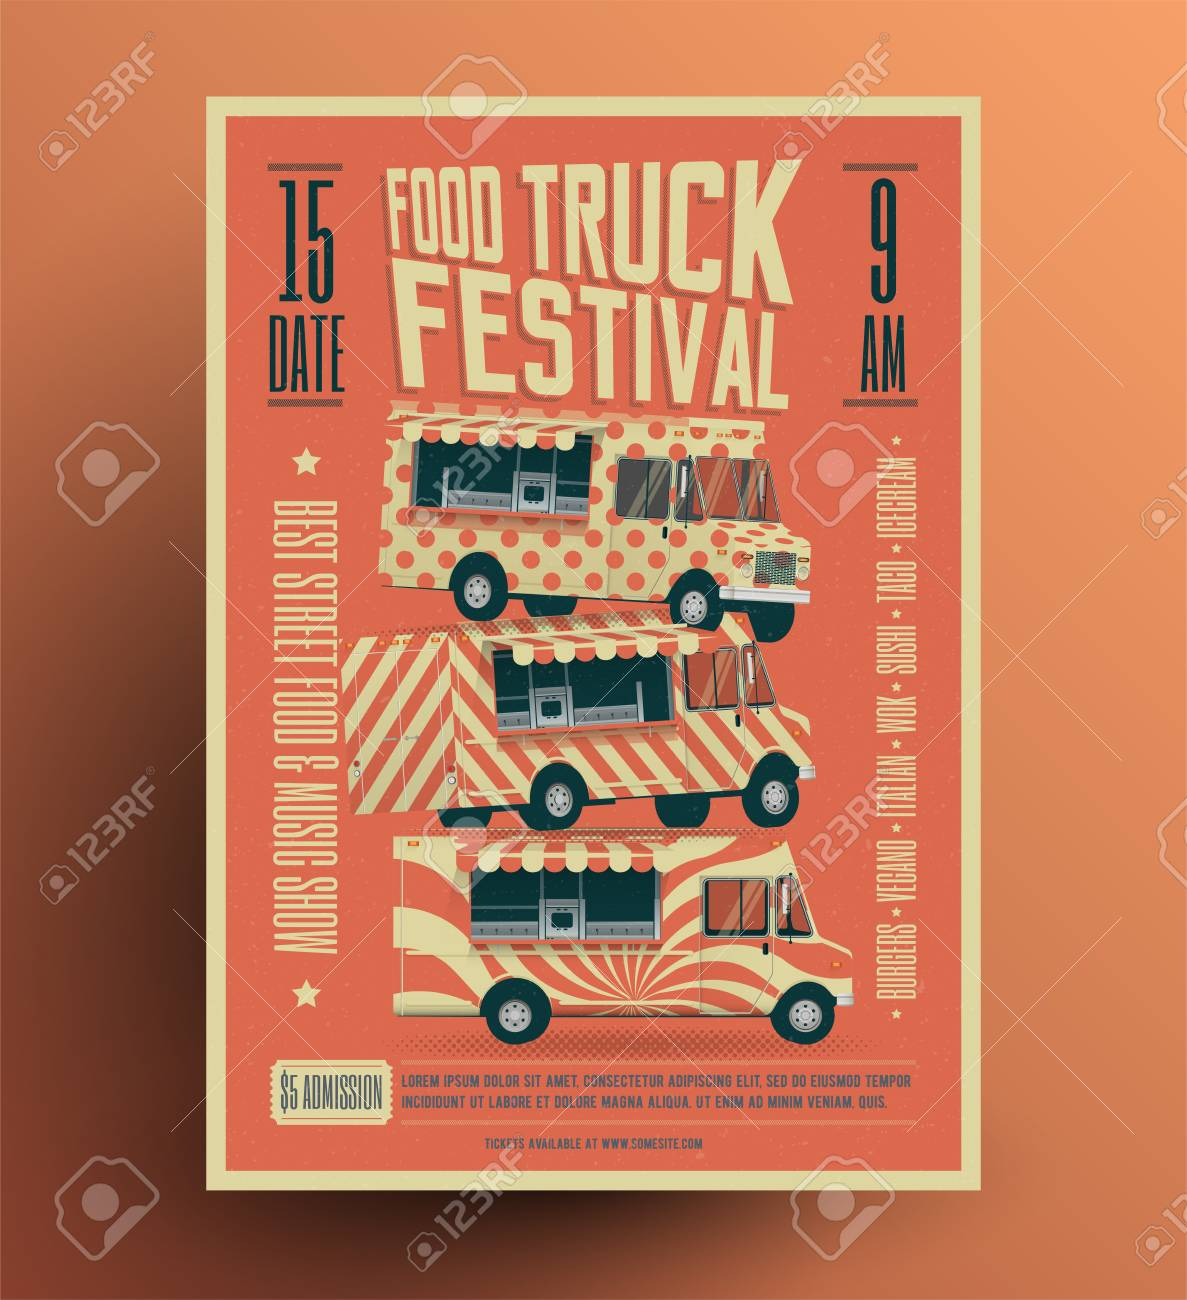 Food Truck Street Food Festival Poster Flyer Template Vintage - Food truck flyer template